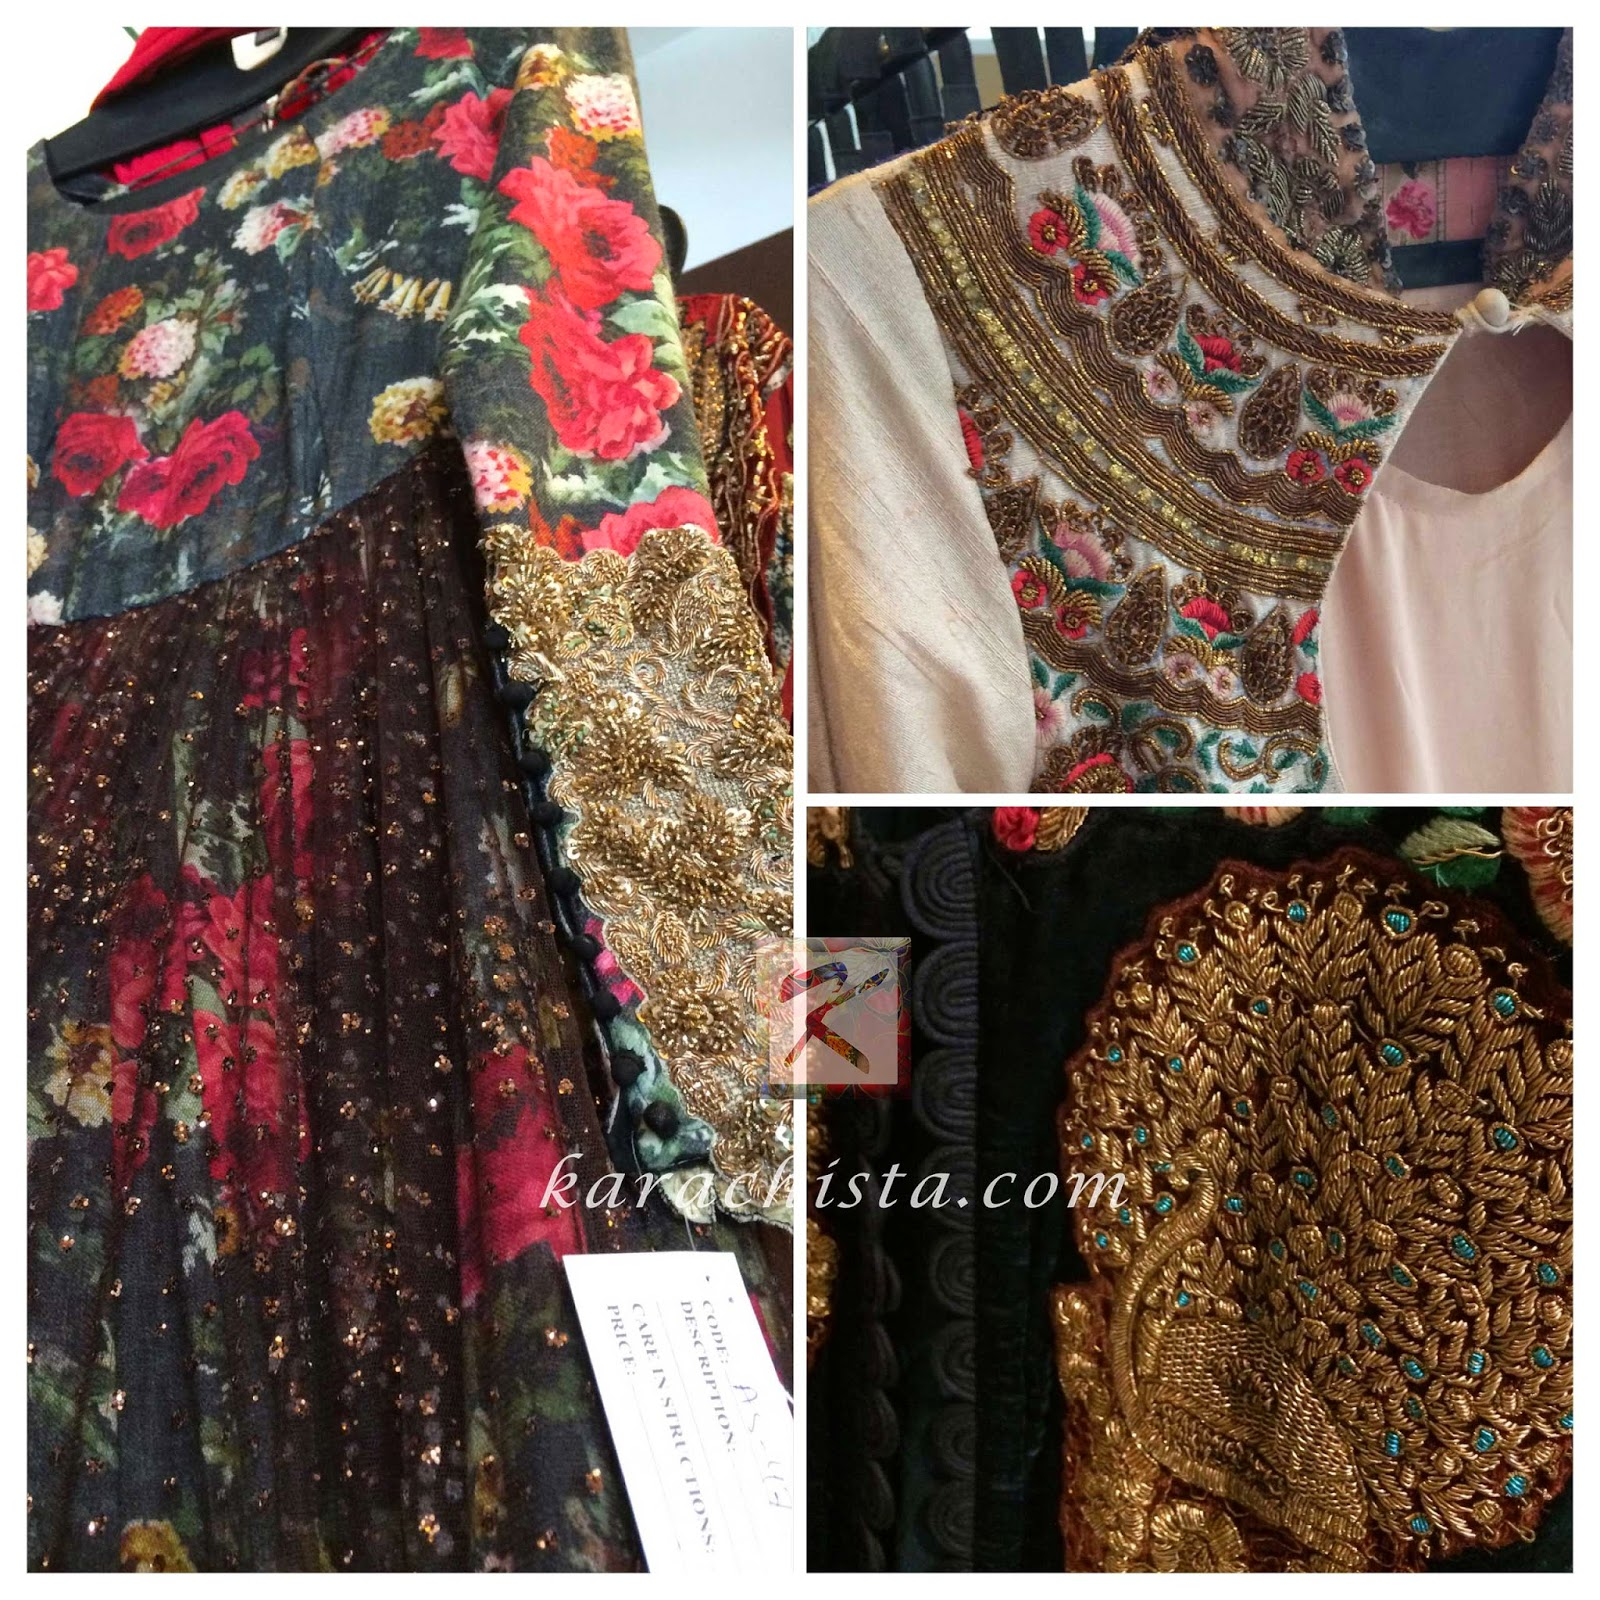 details from outfits by Indian designer Anshu Jain at Ensemble Karachi